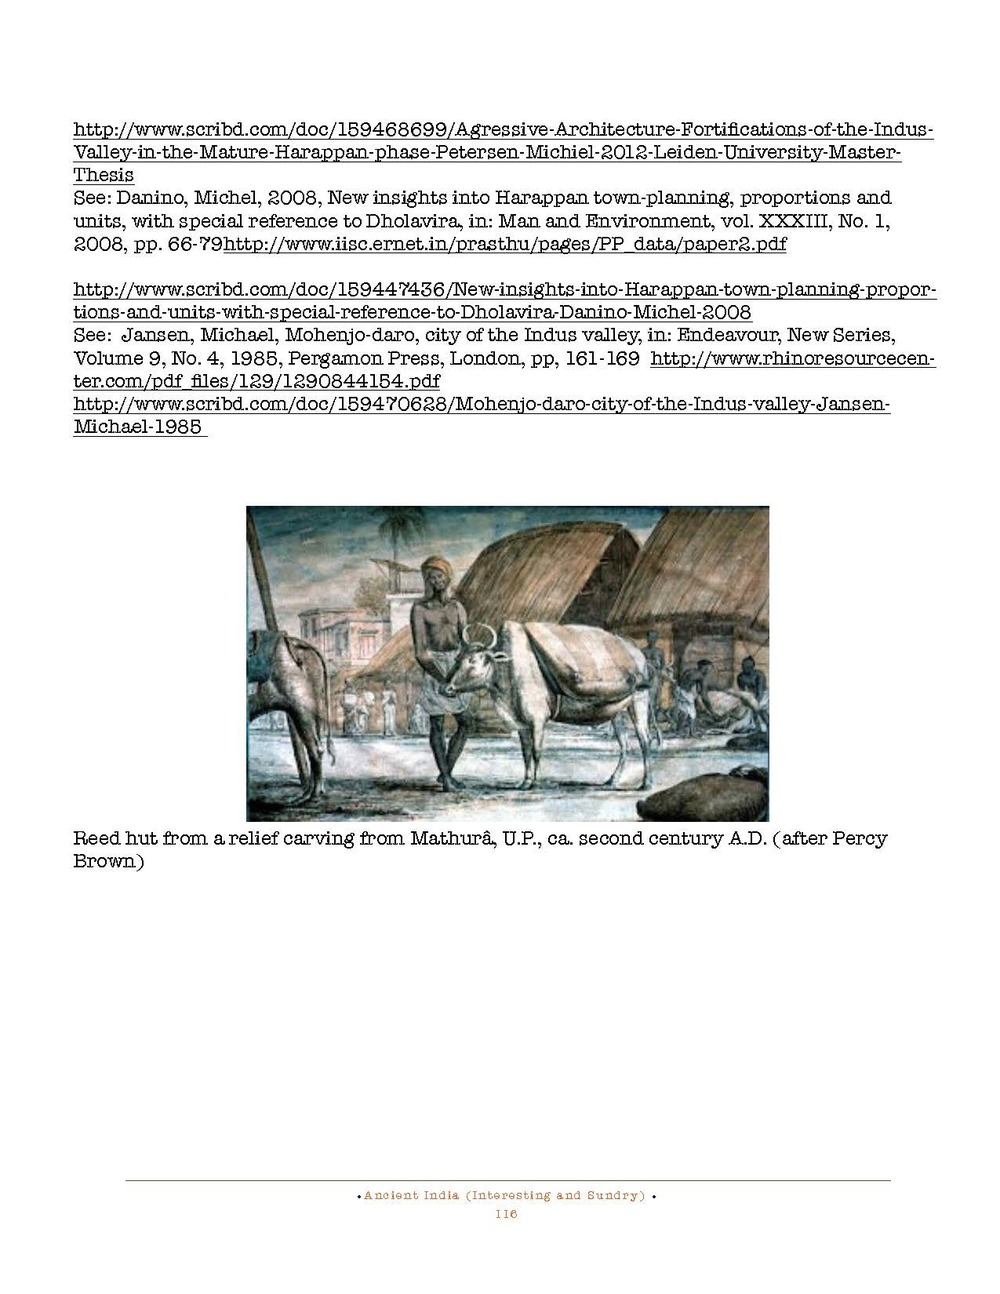 HOCE- Ancient India Notes (Other Interesting and Sundry)_Page_116.jpg